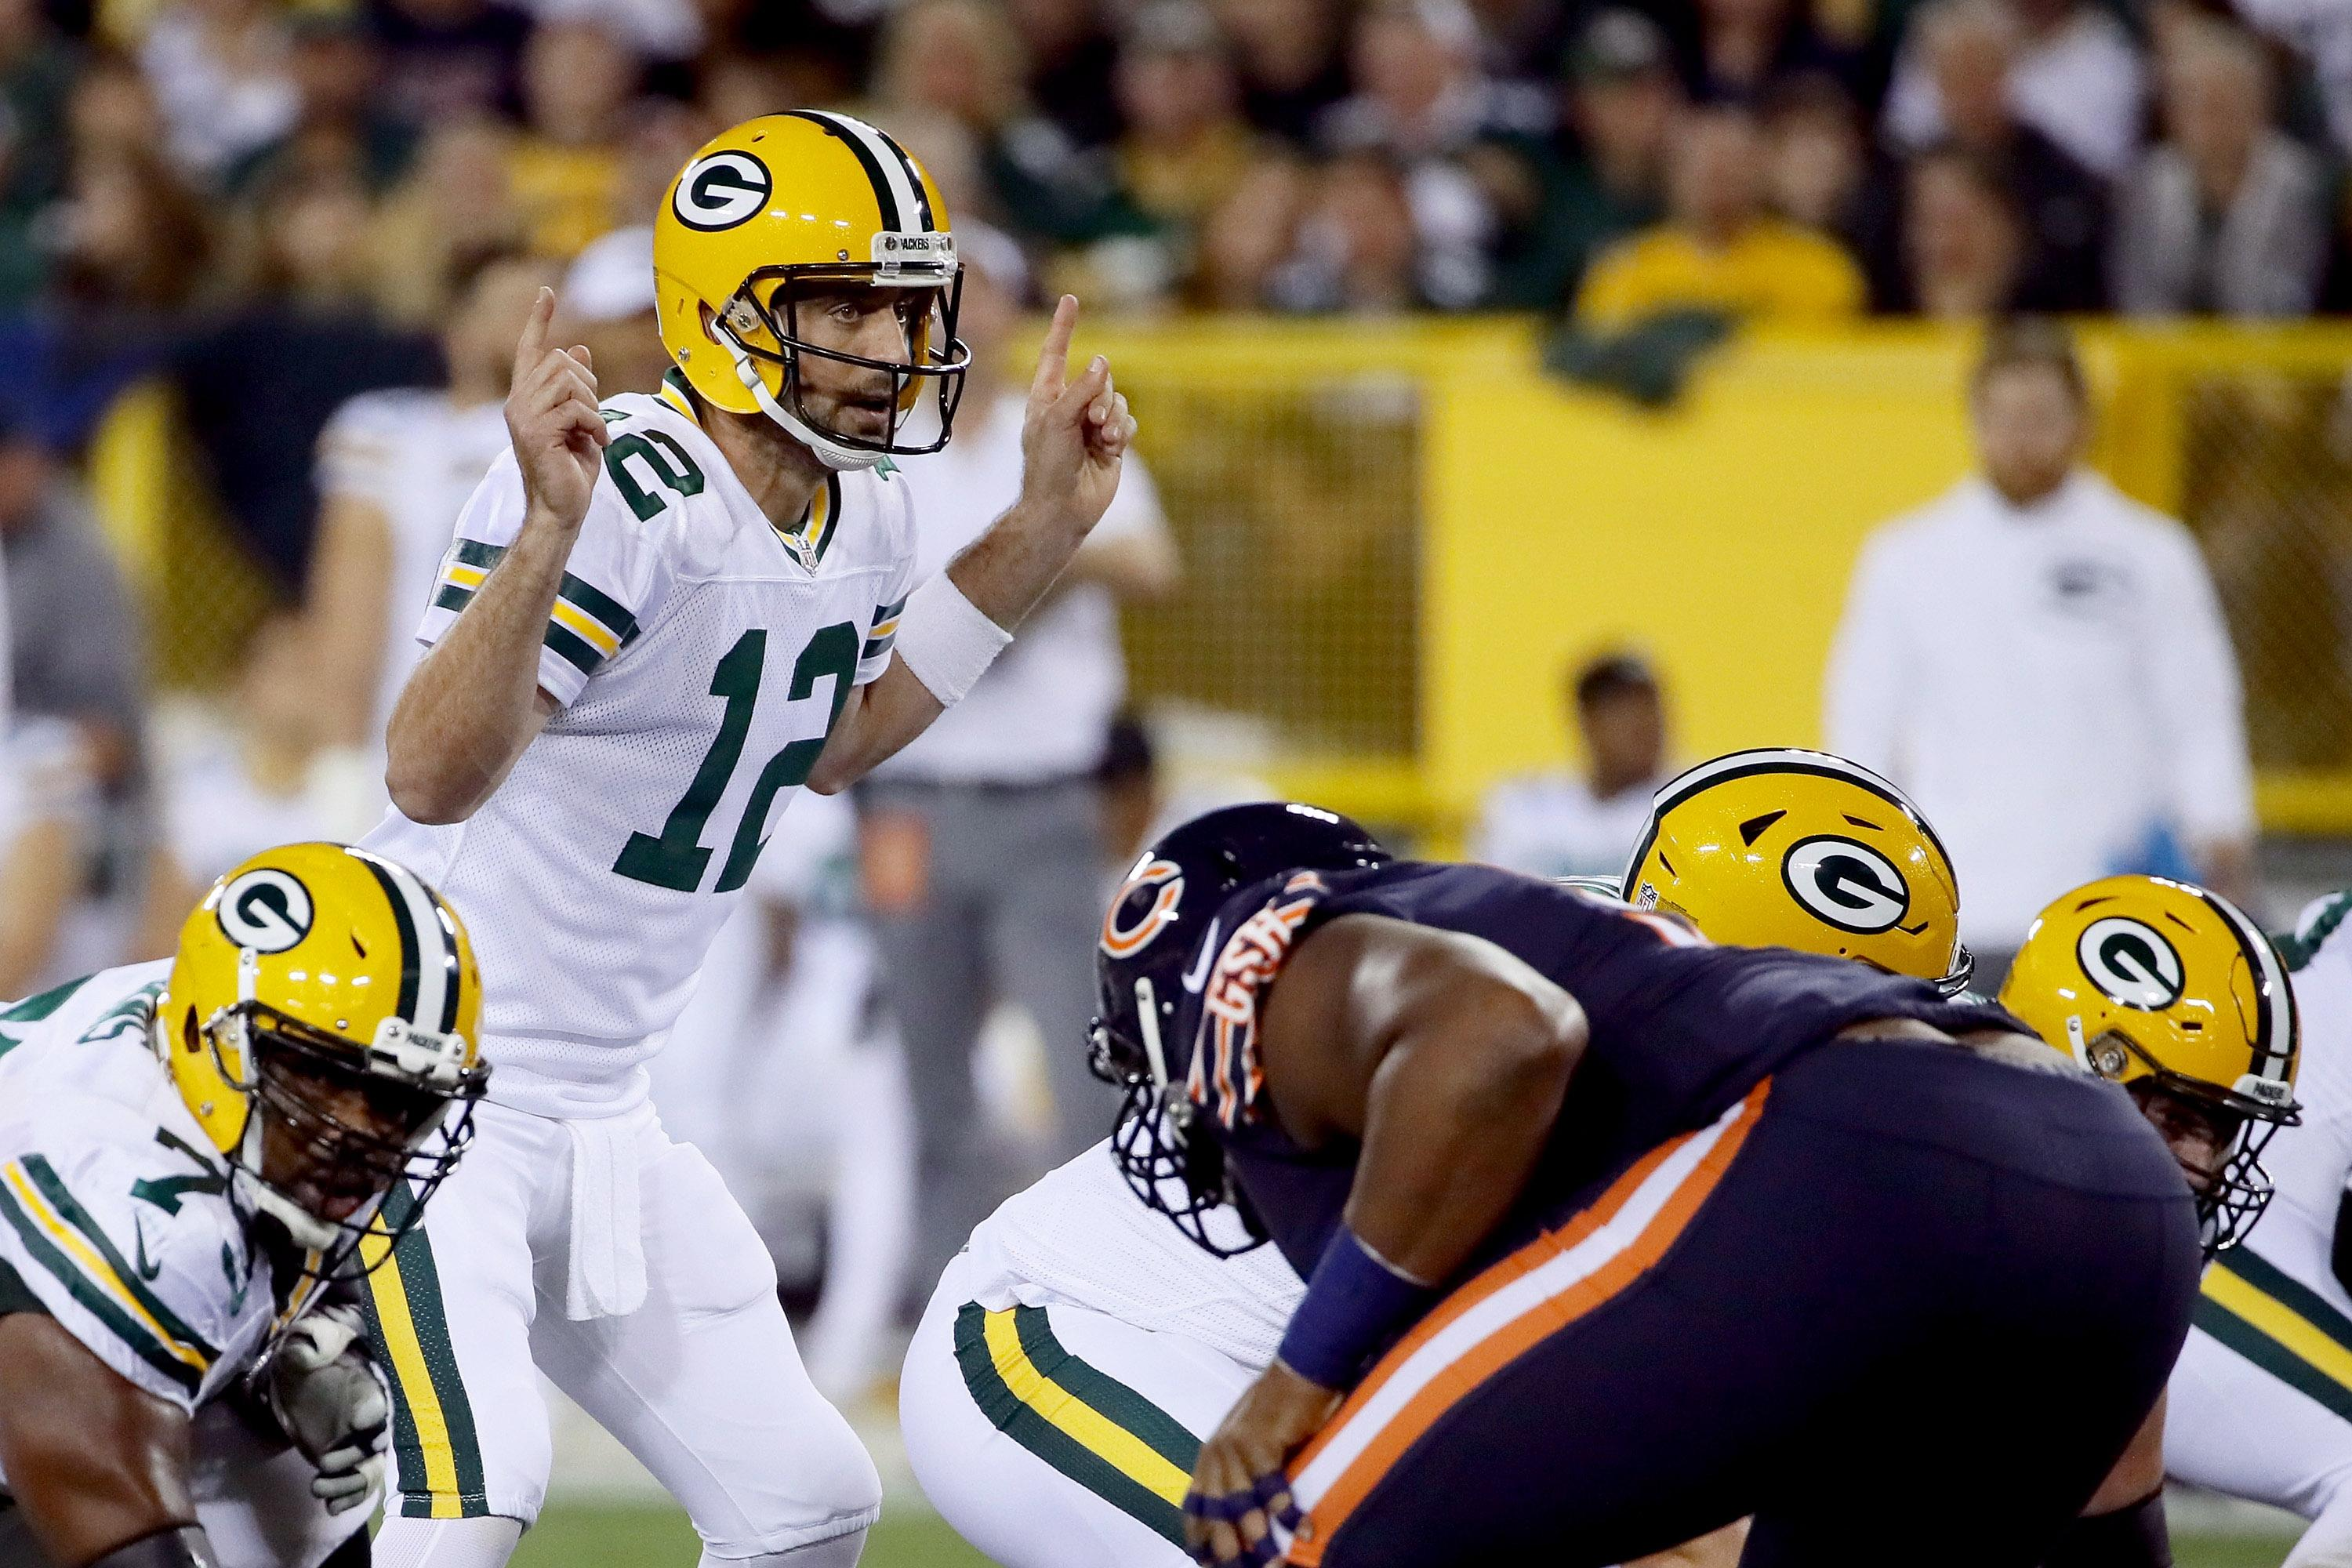 Chicago Bears Vs Green Bay Packers 2019 Prediction Against